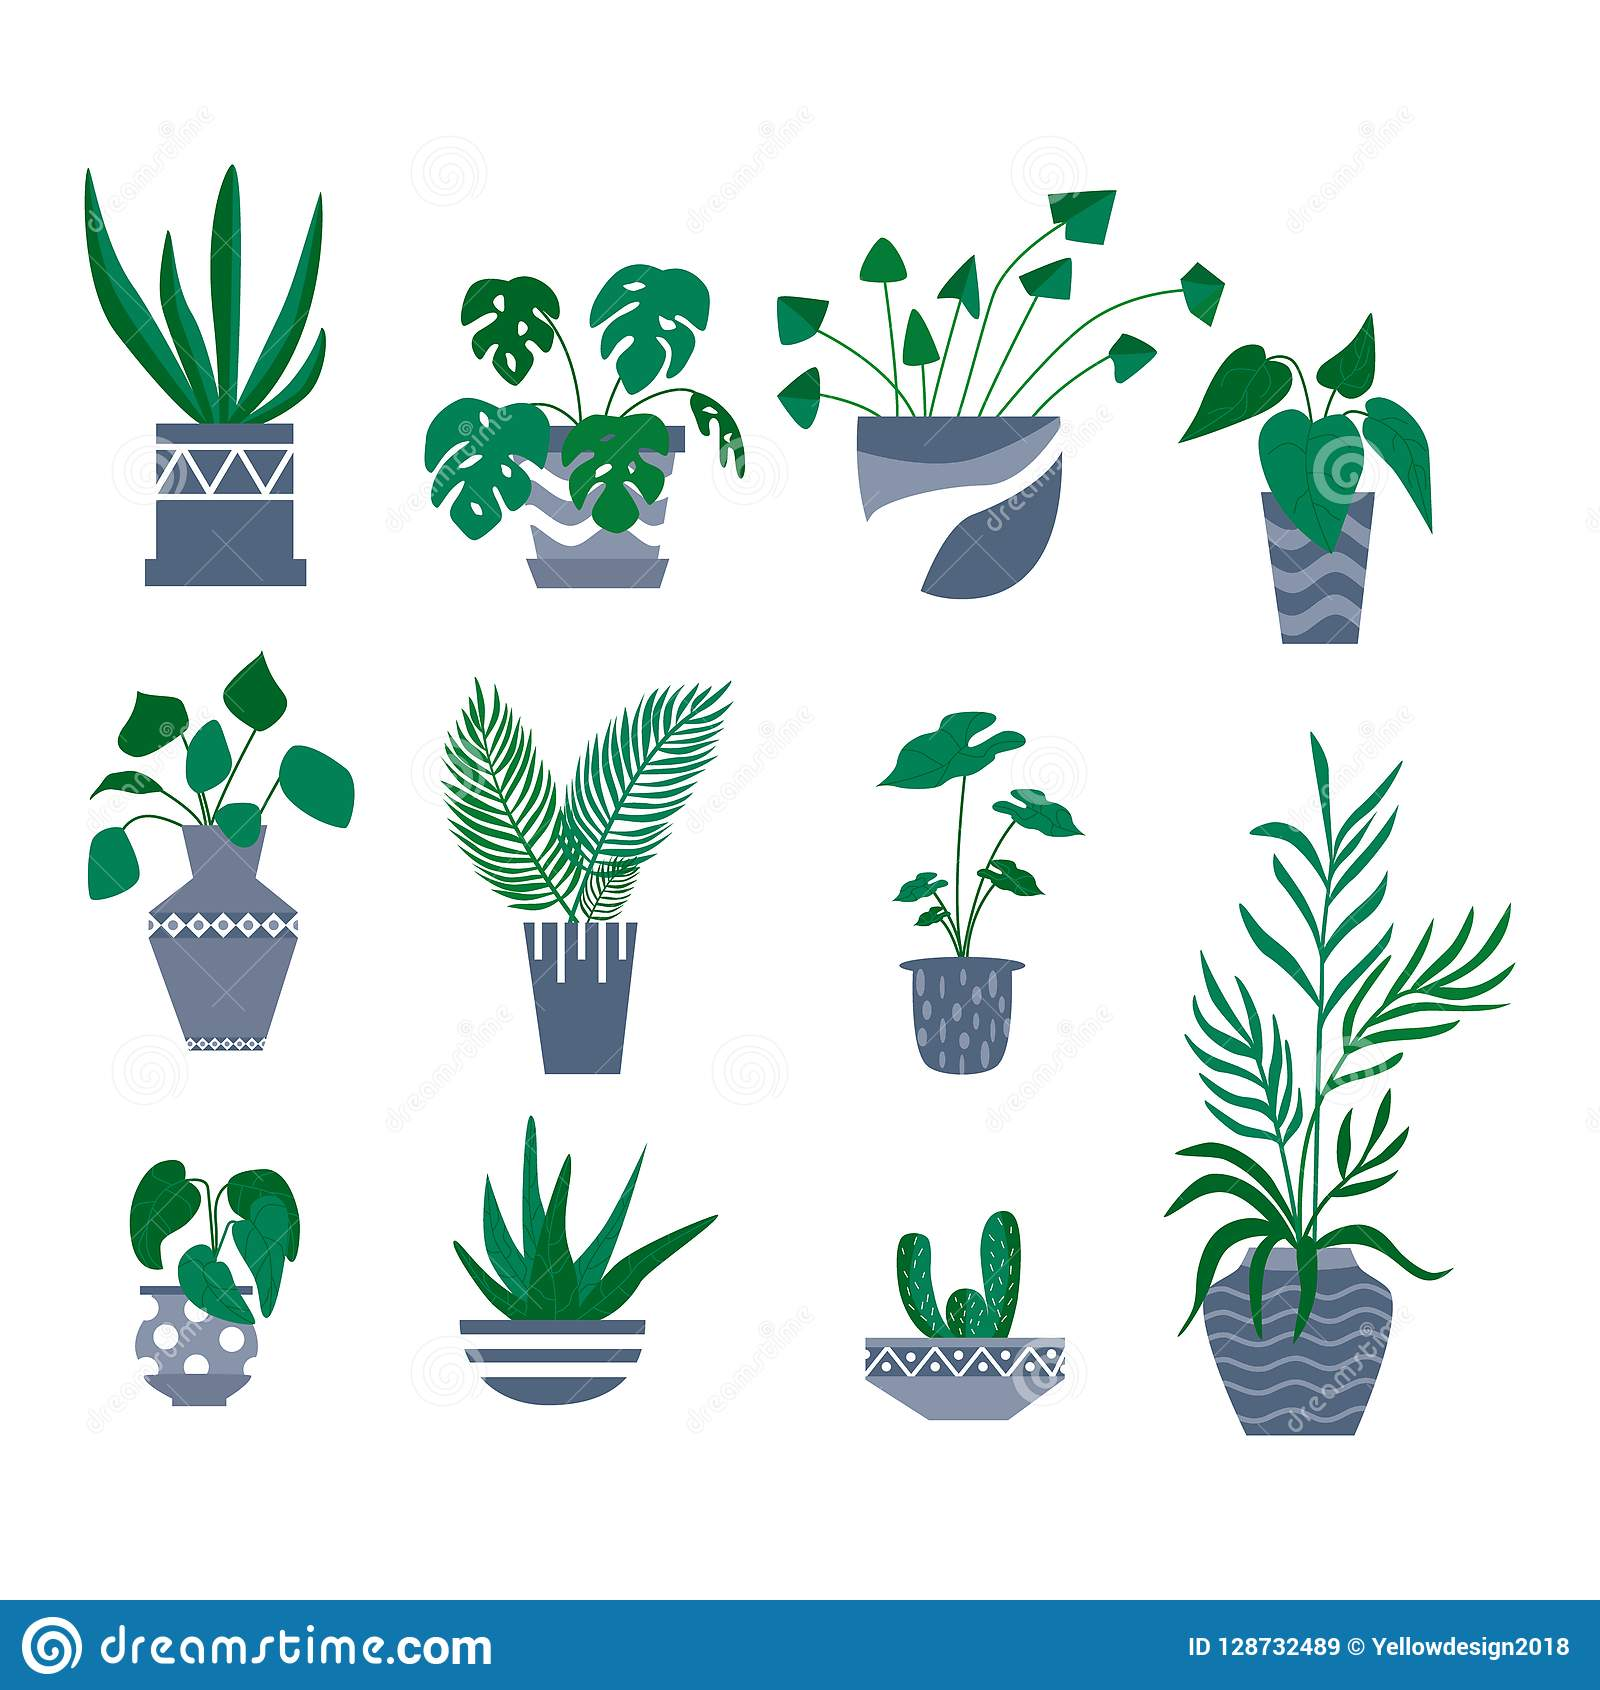 Potted Plants Decorative Collection Flat Colorful Vector Illustration